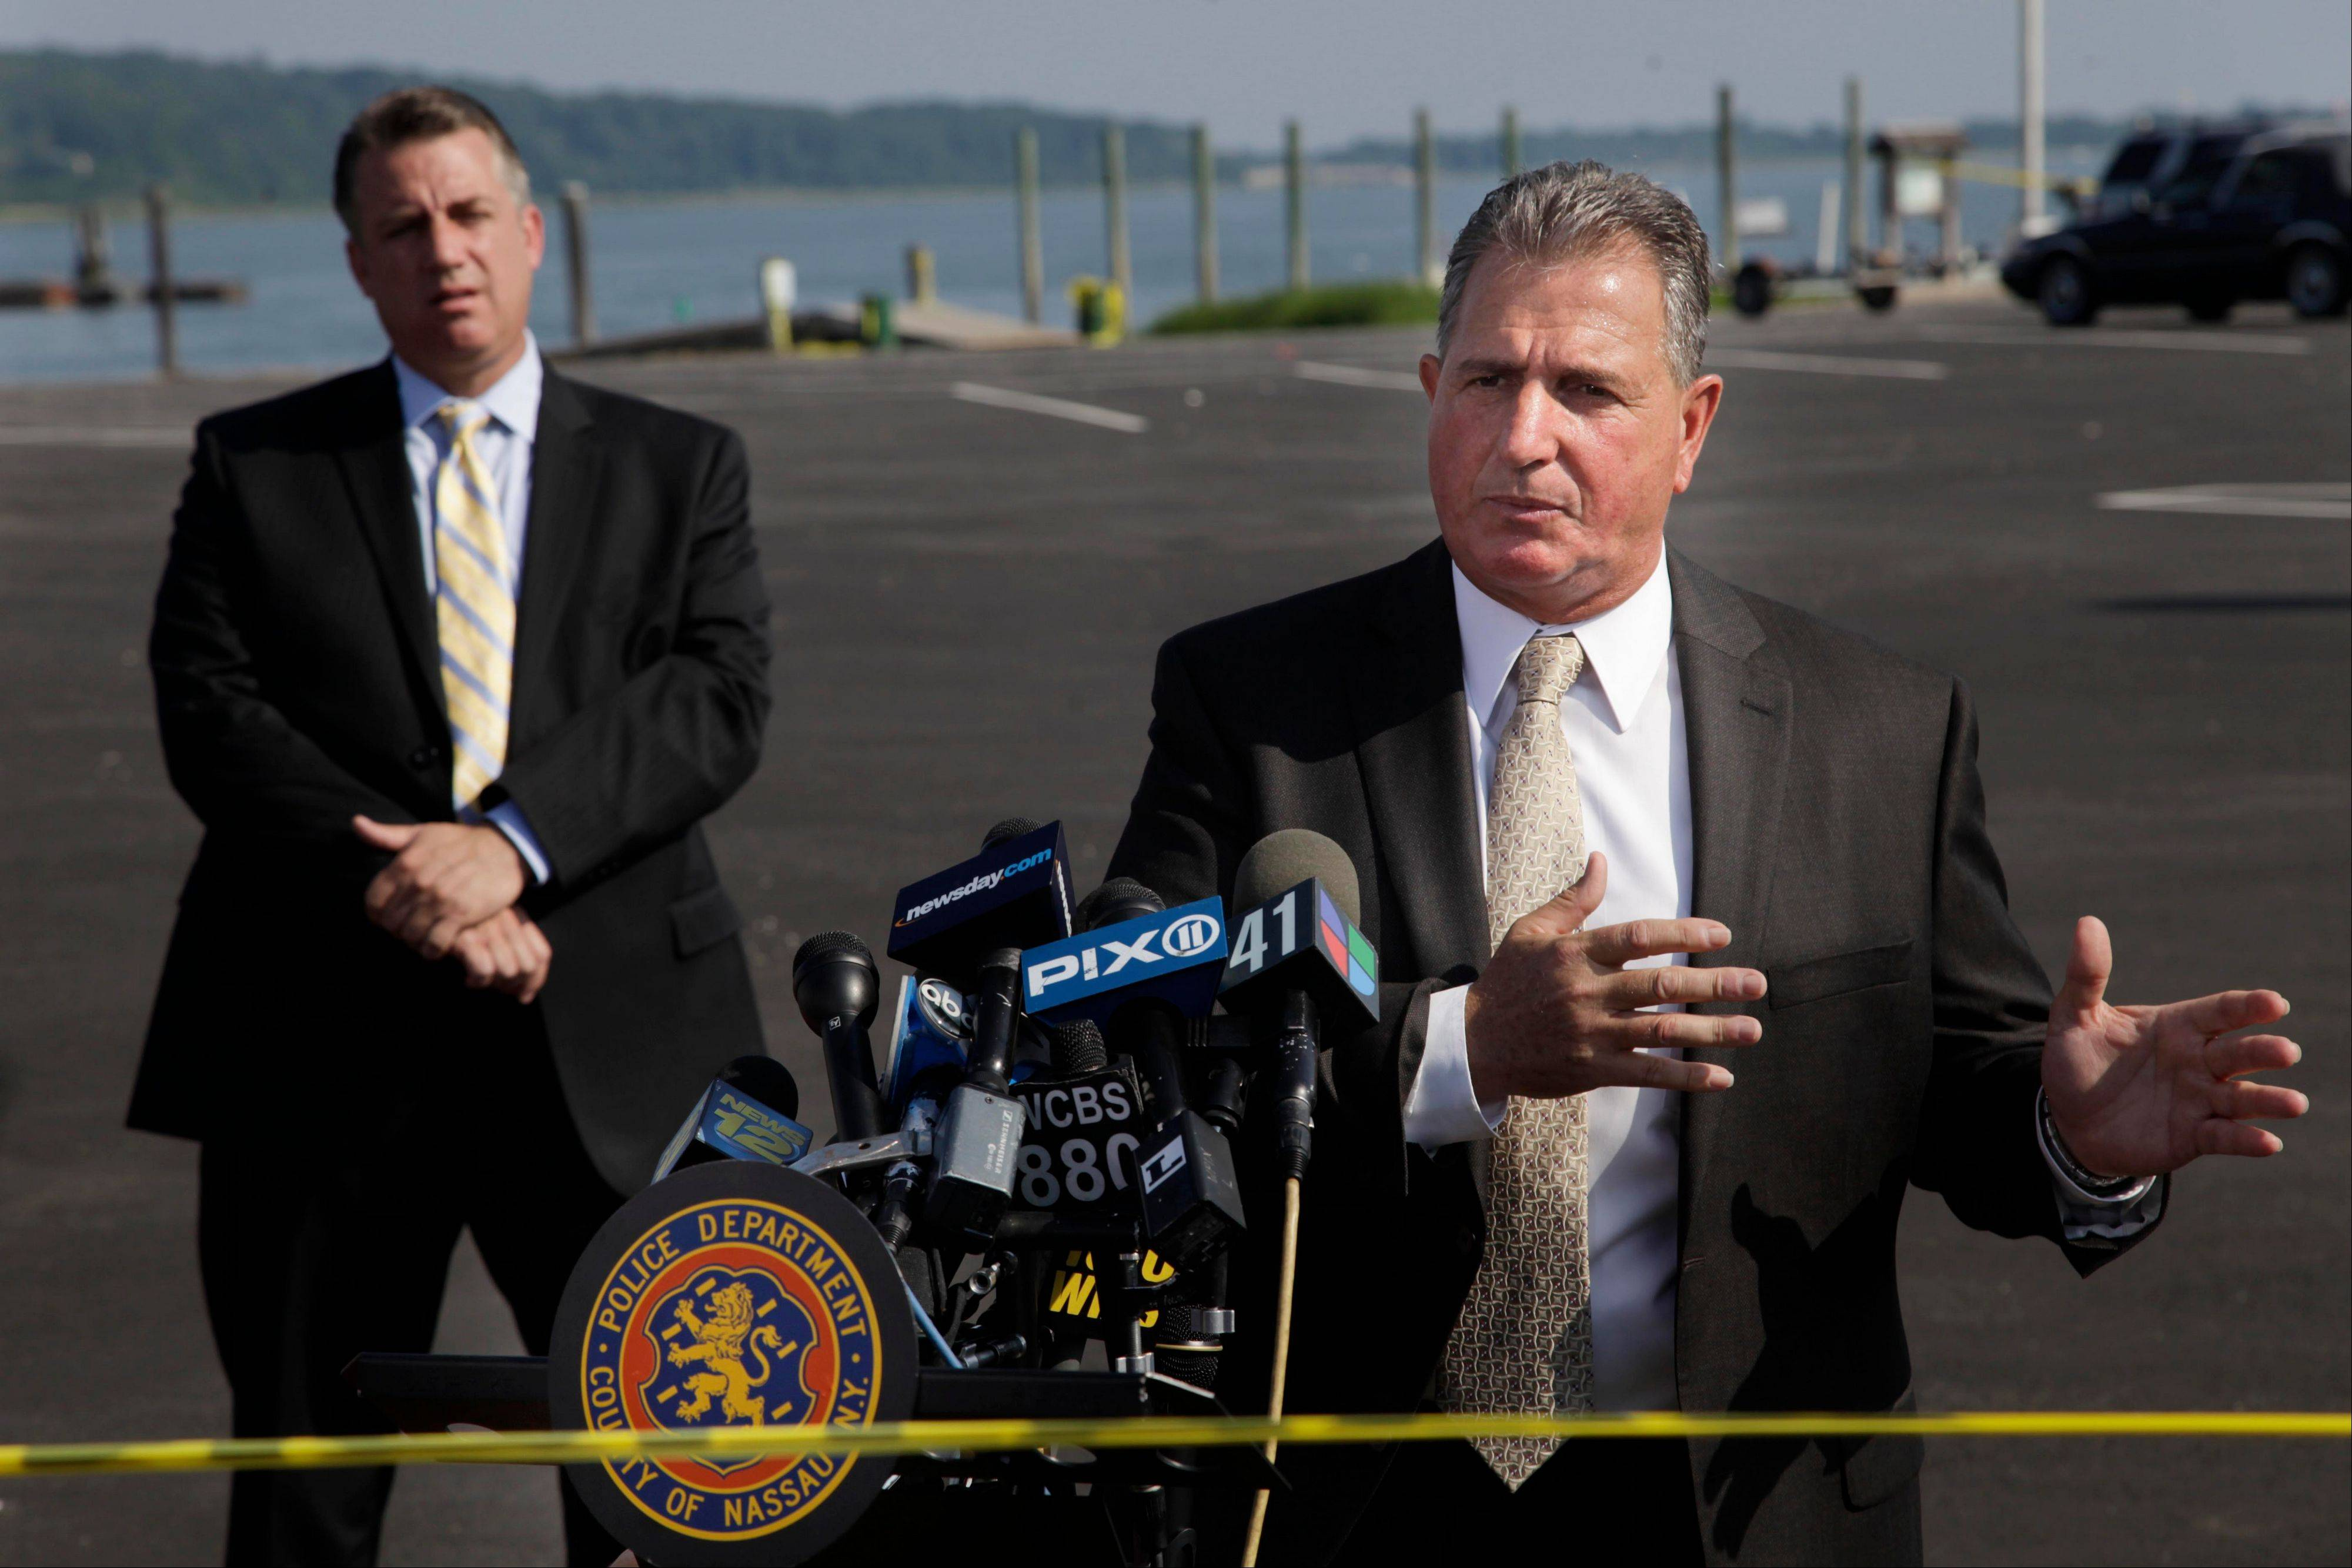 Nassau County Police Det. Lt. John Azzata, right, gives information about a fatal boating accident during a news conference in Oyster Bay, N.Y., Thursday, July 5, 2012. Police say three bodies have been pulled out of New York's Long Island Sound after a yacht capsized on the Fourth of July Police say three bodies pulled out of New York's Long Island Sound after a yacht capsized were all children. The bodies of the 12-year-old boy and two girls, ages 11 and 8, were recovered from the boat's cabin. Twenty-four other people were rescued, and were treated and released.